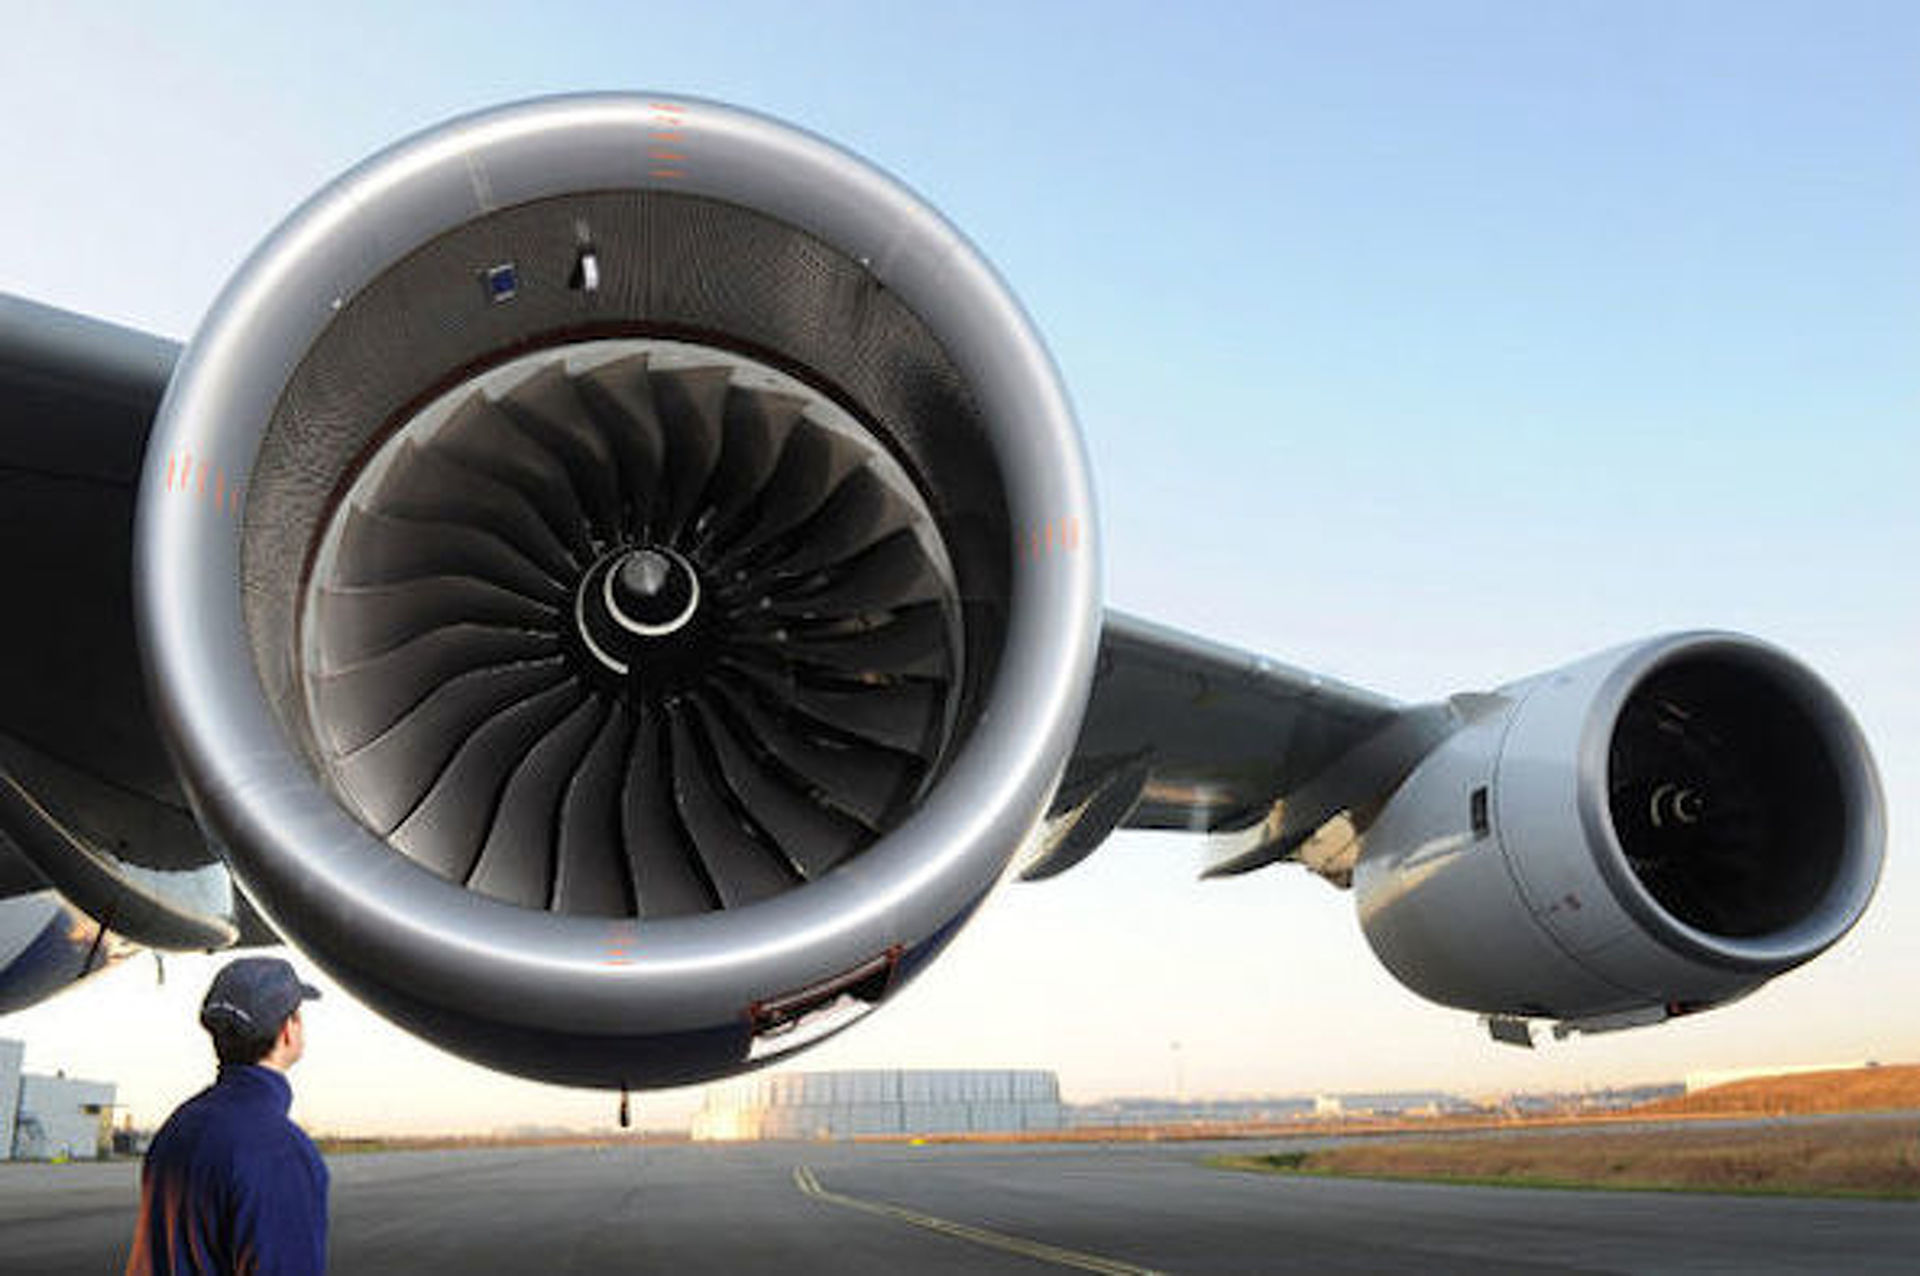 Rolls-Royce May Hold Crucial Key in Malaysia Flight 370's Disappearance